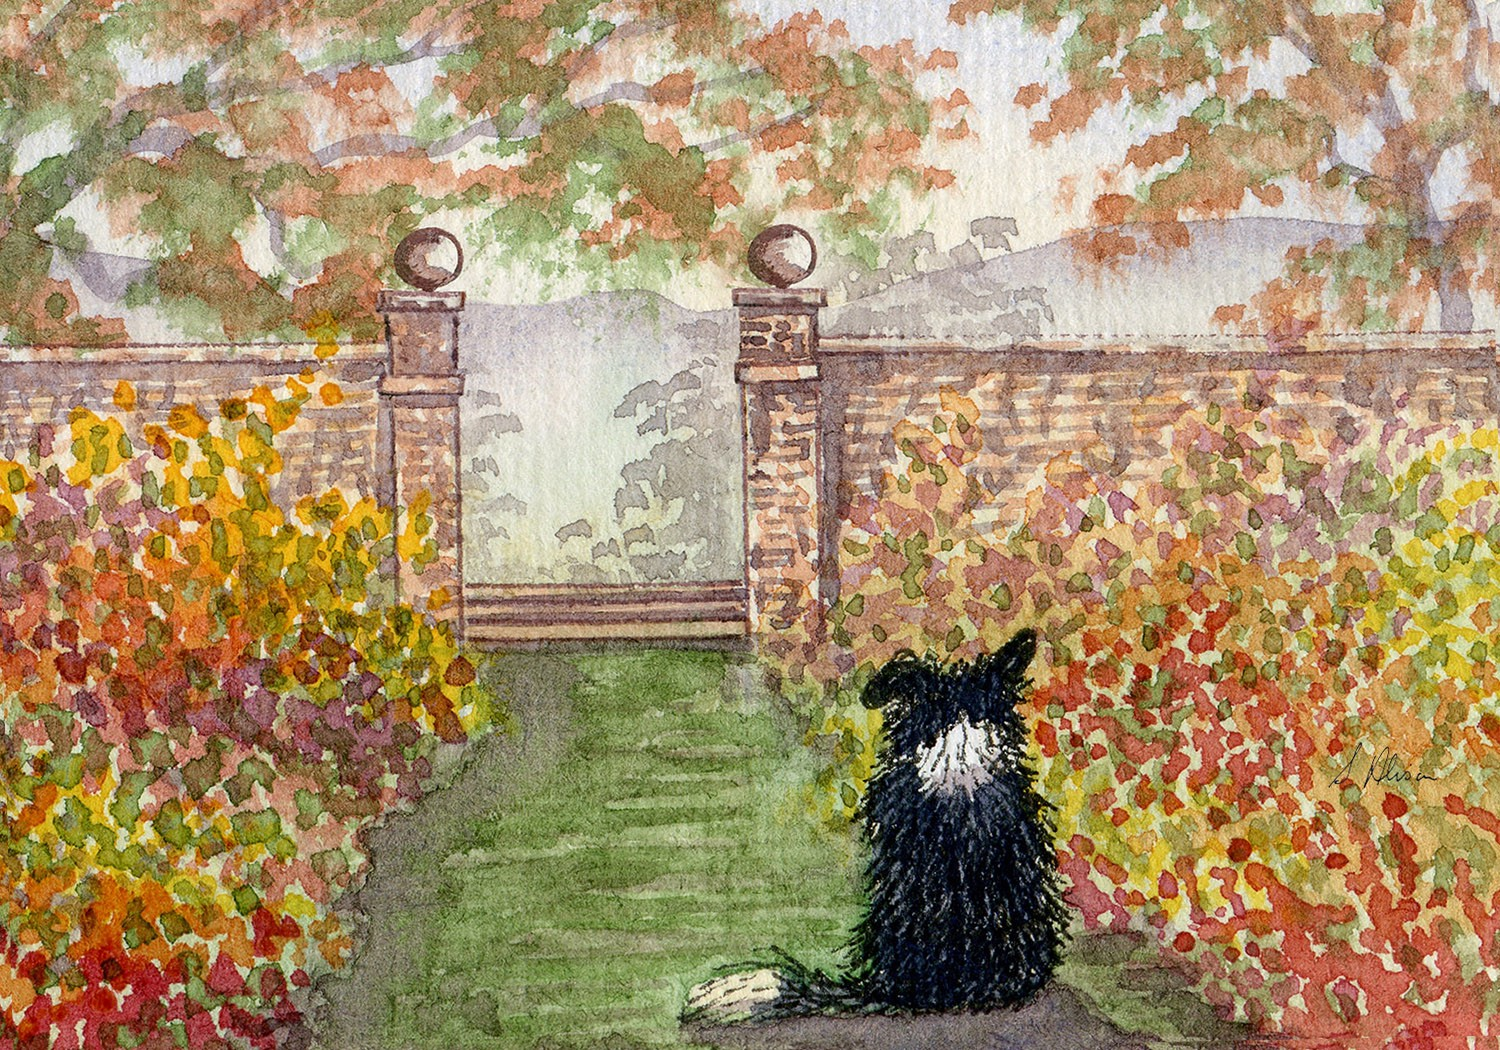 Painting of a dog looking out at autumn